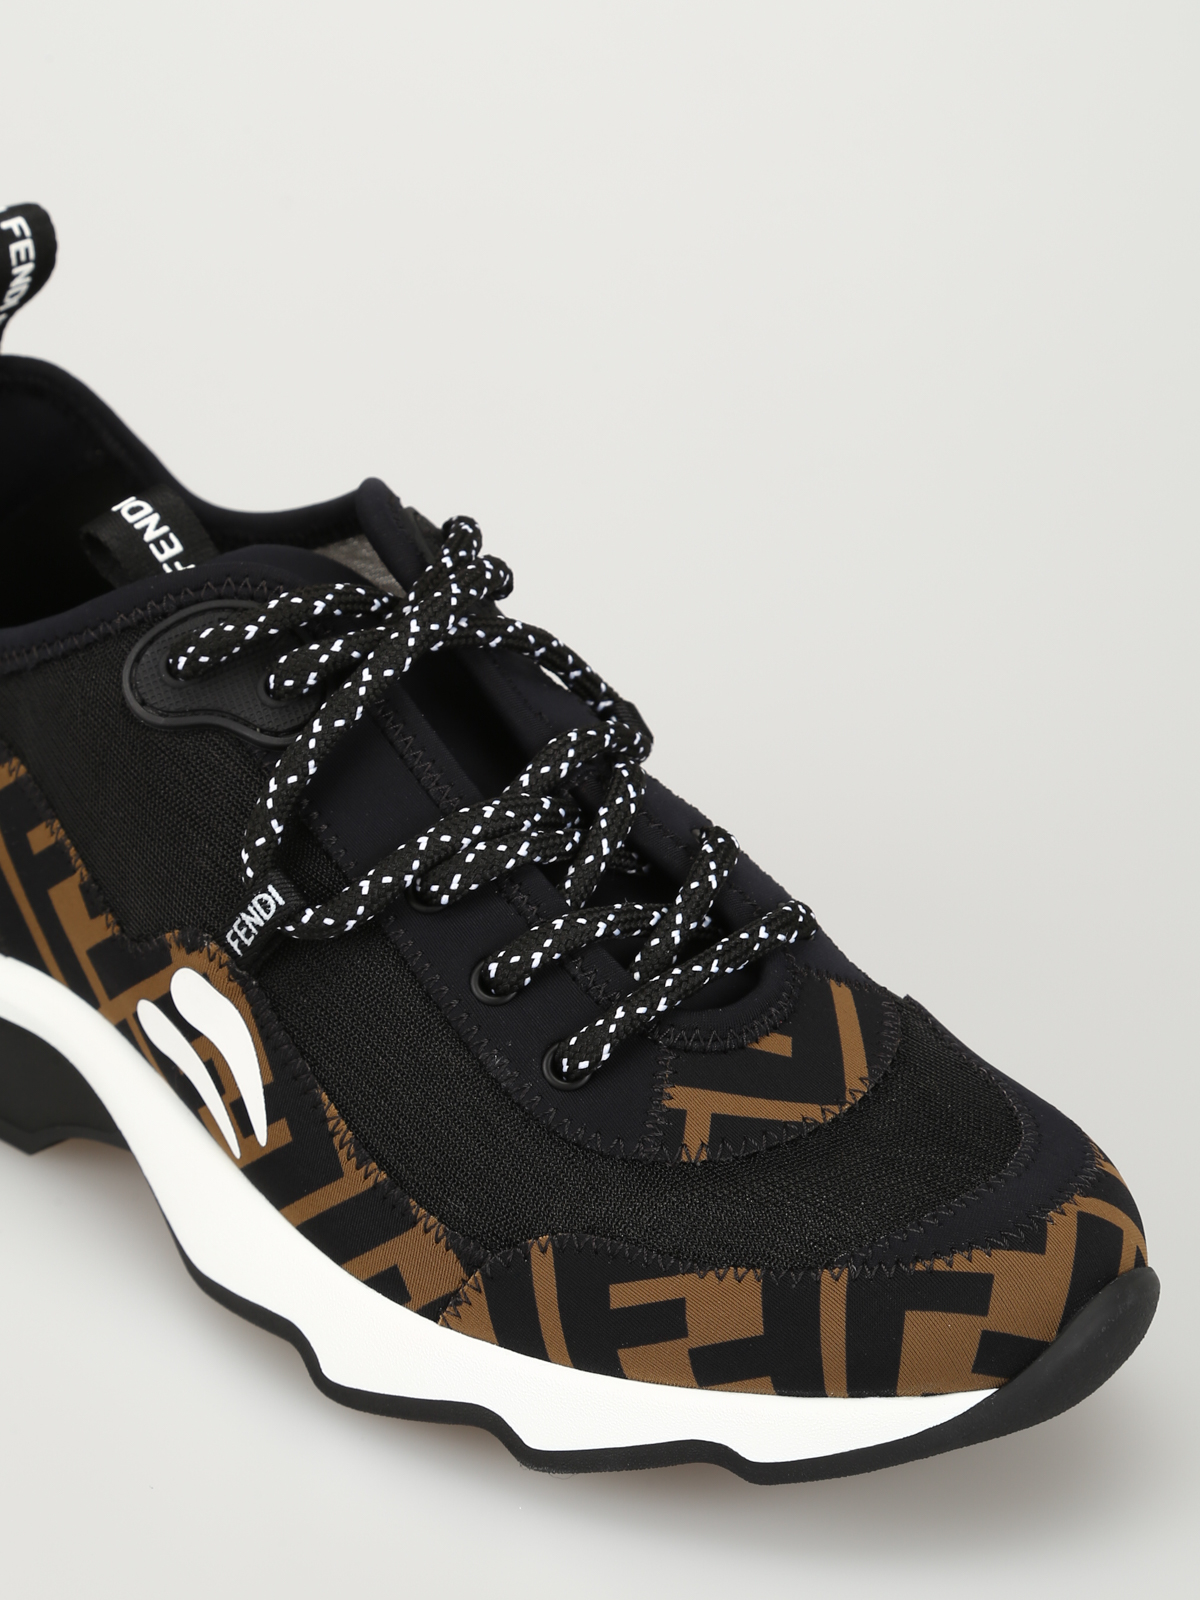 Fendi - Double F lace-up sneakers